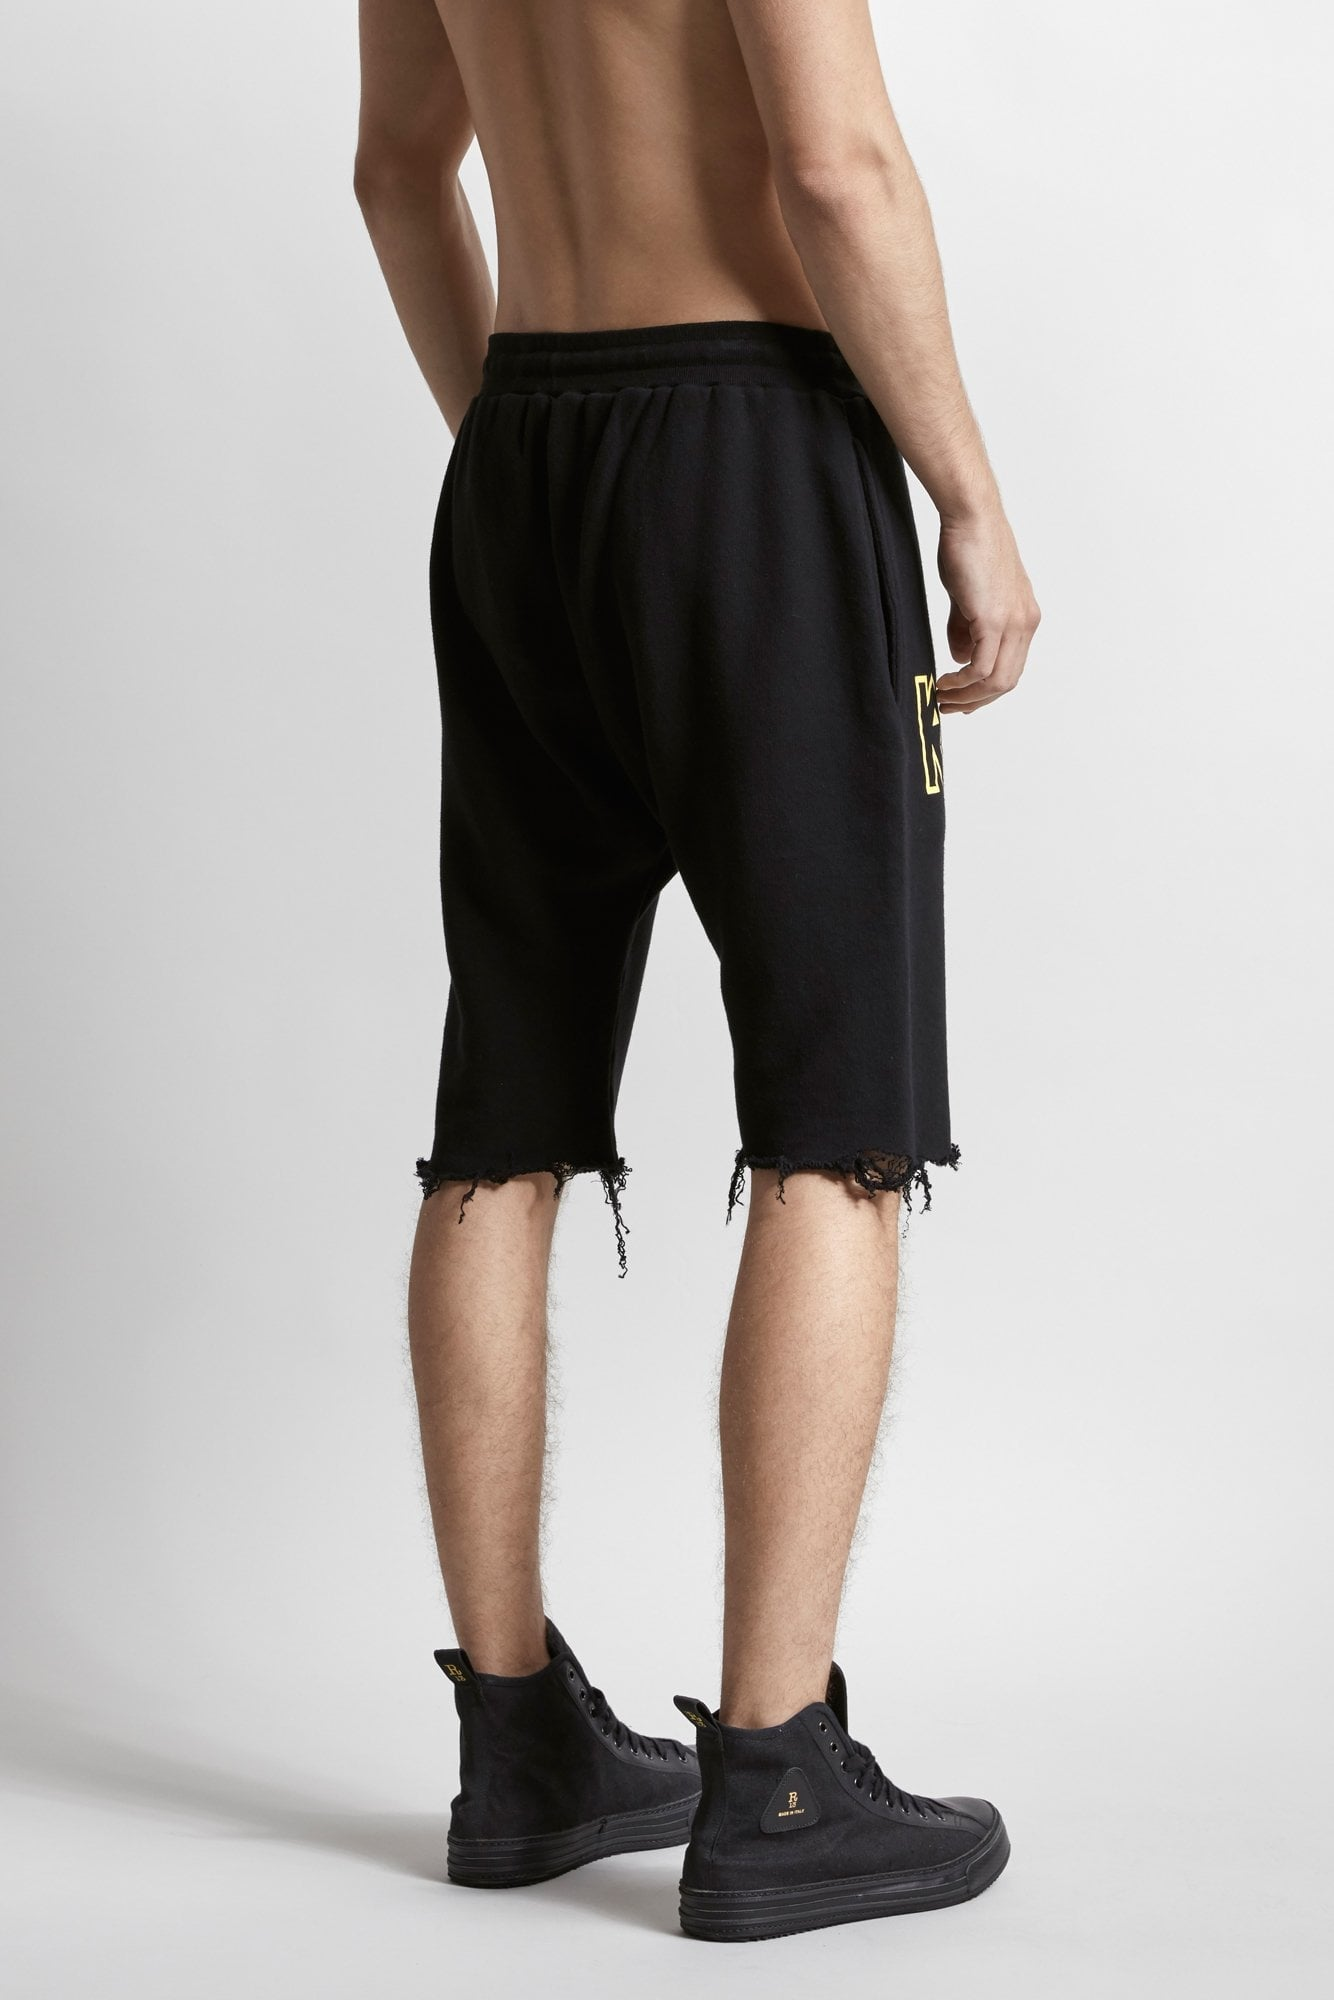 Rthirteen Sweatshort - Black